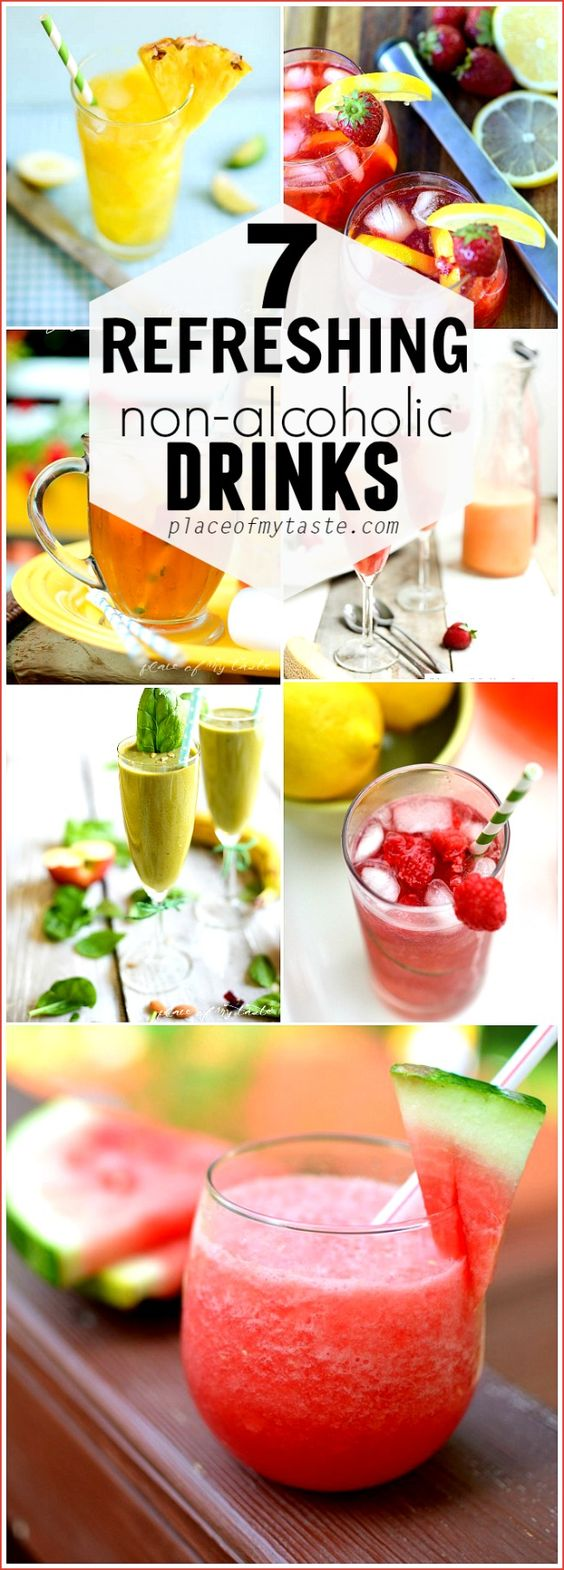 Refreshing non alcoholic drinks summer cupcakes for Refreshing drink recipes non alcoholic